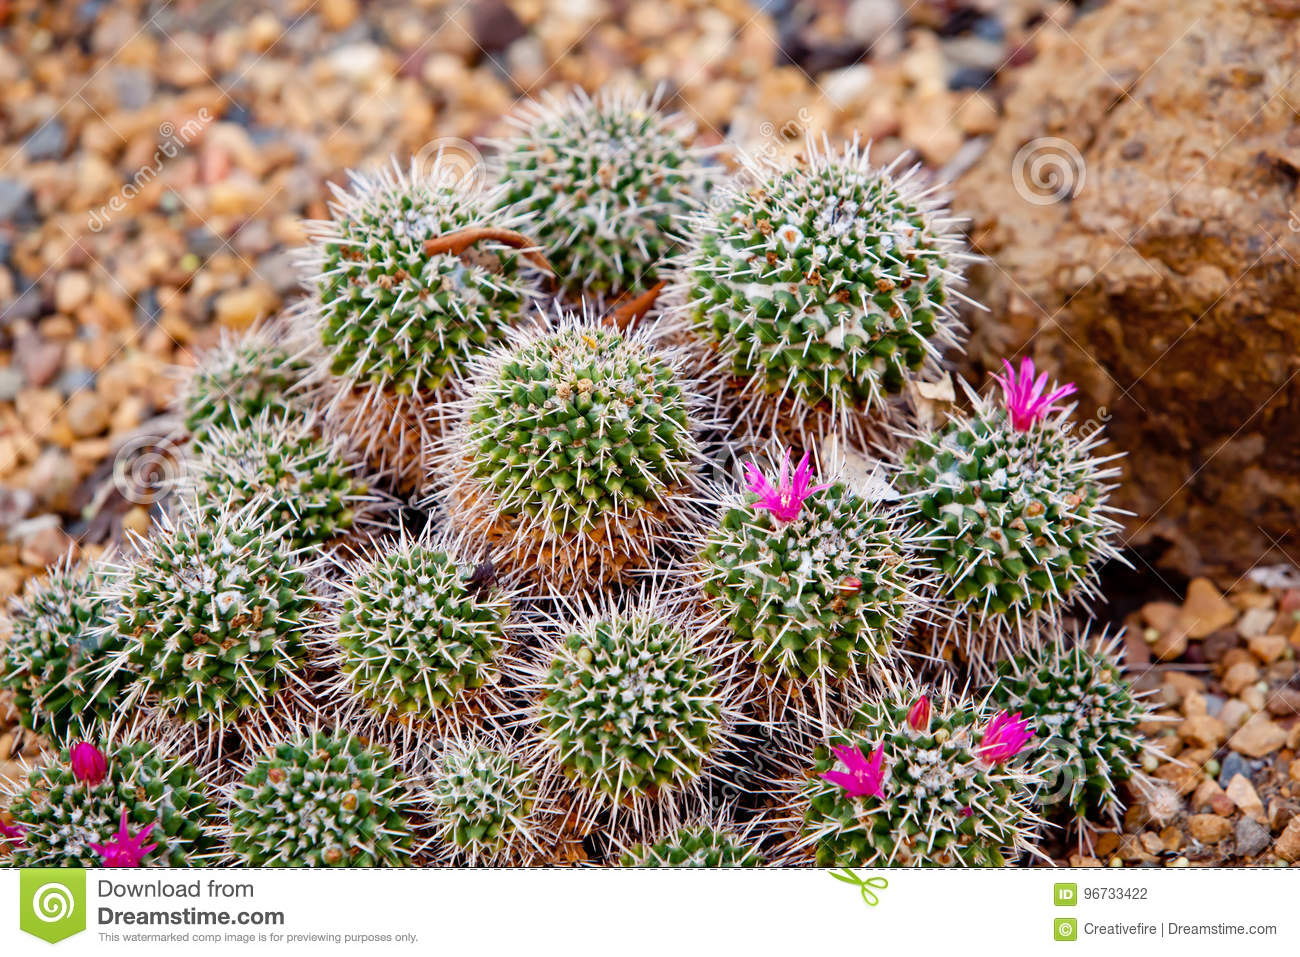 Small spikey cactus plant with tiny pink flowers stock photo image download small spikey cactus plant with tiny pink flowers stock photo image of green mightylinksfo